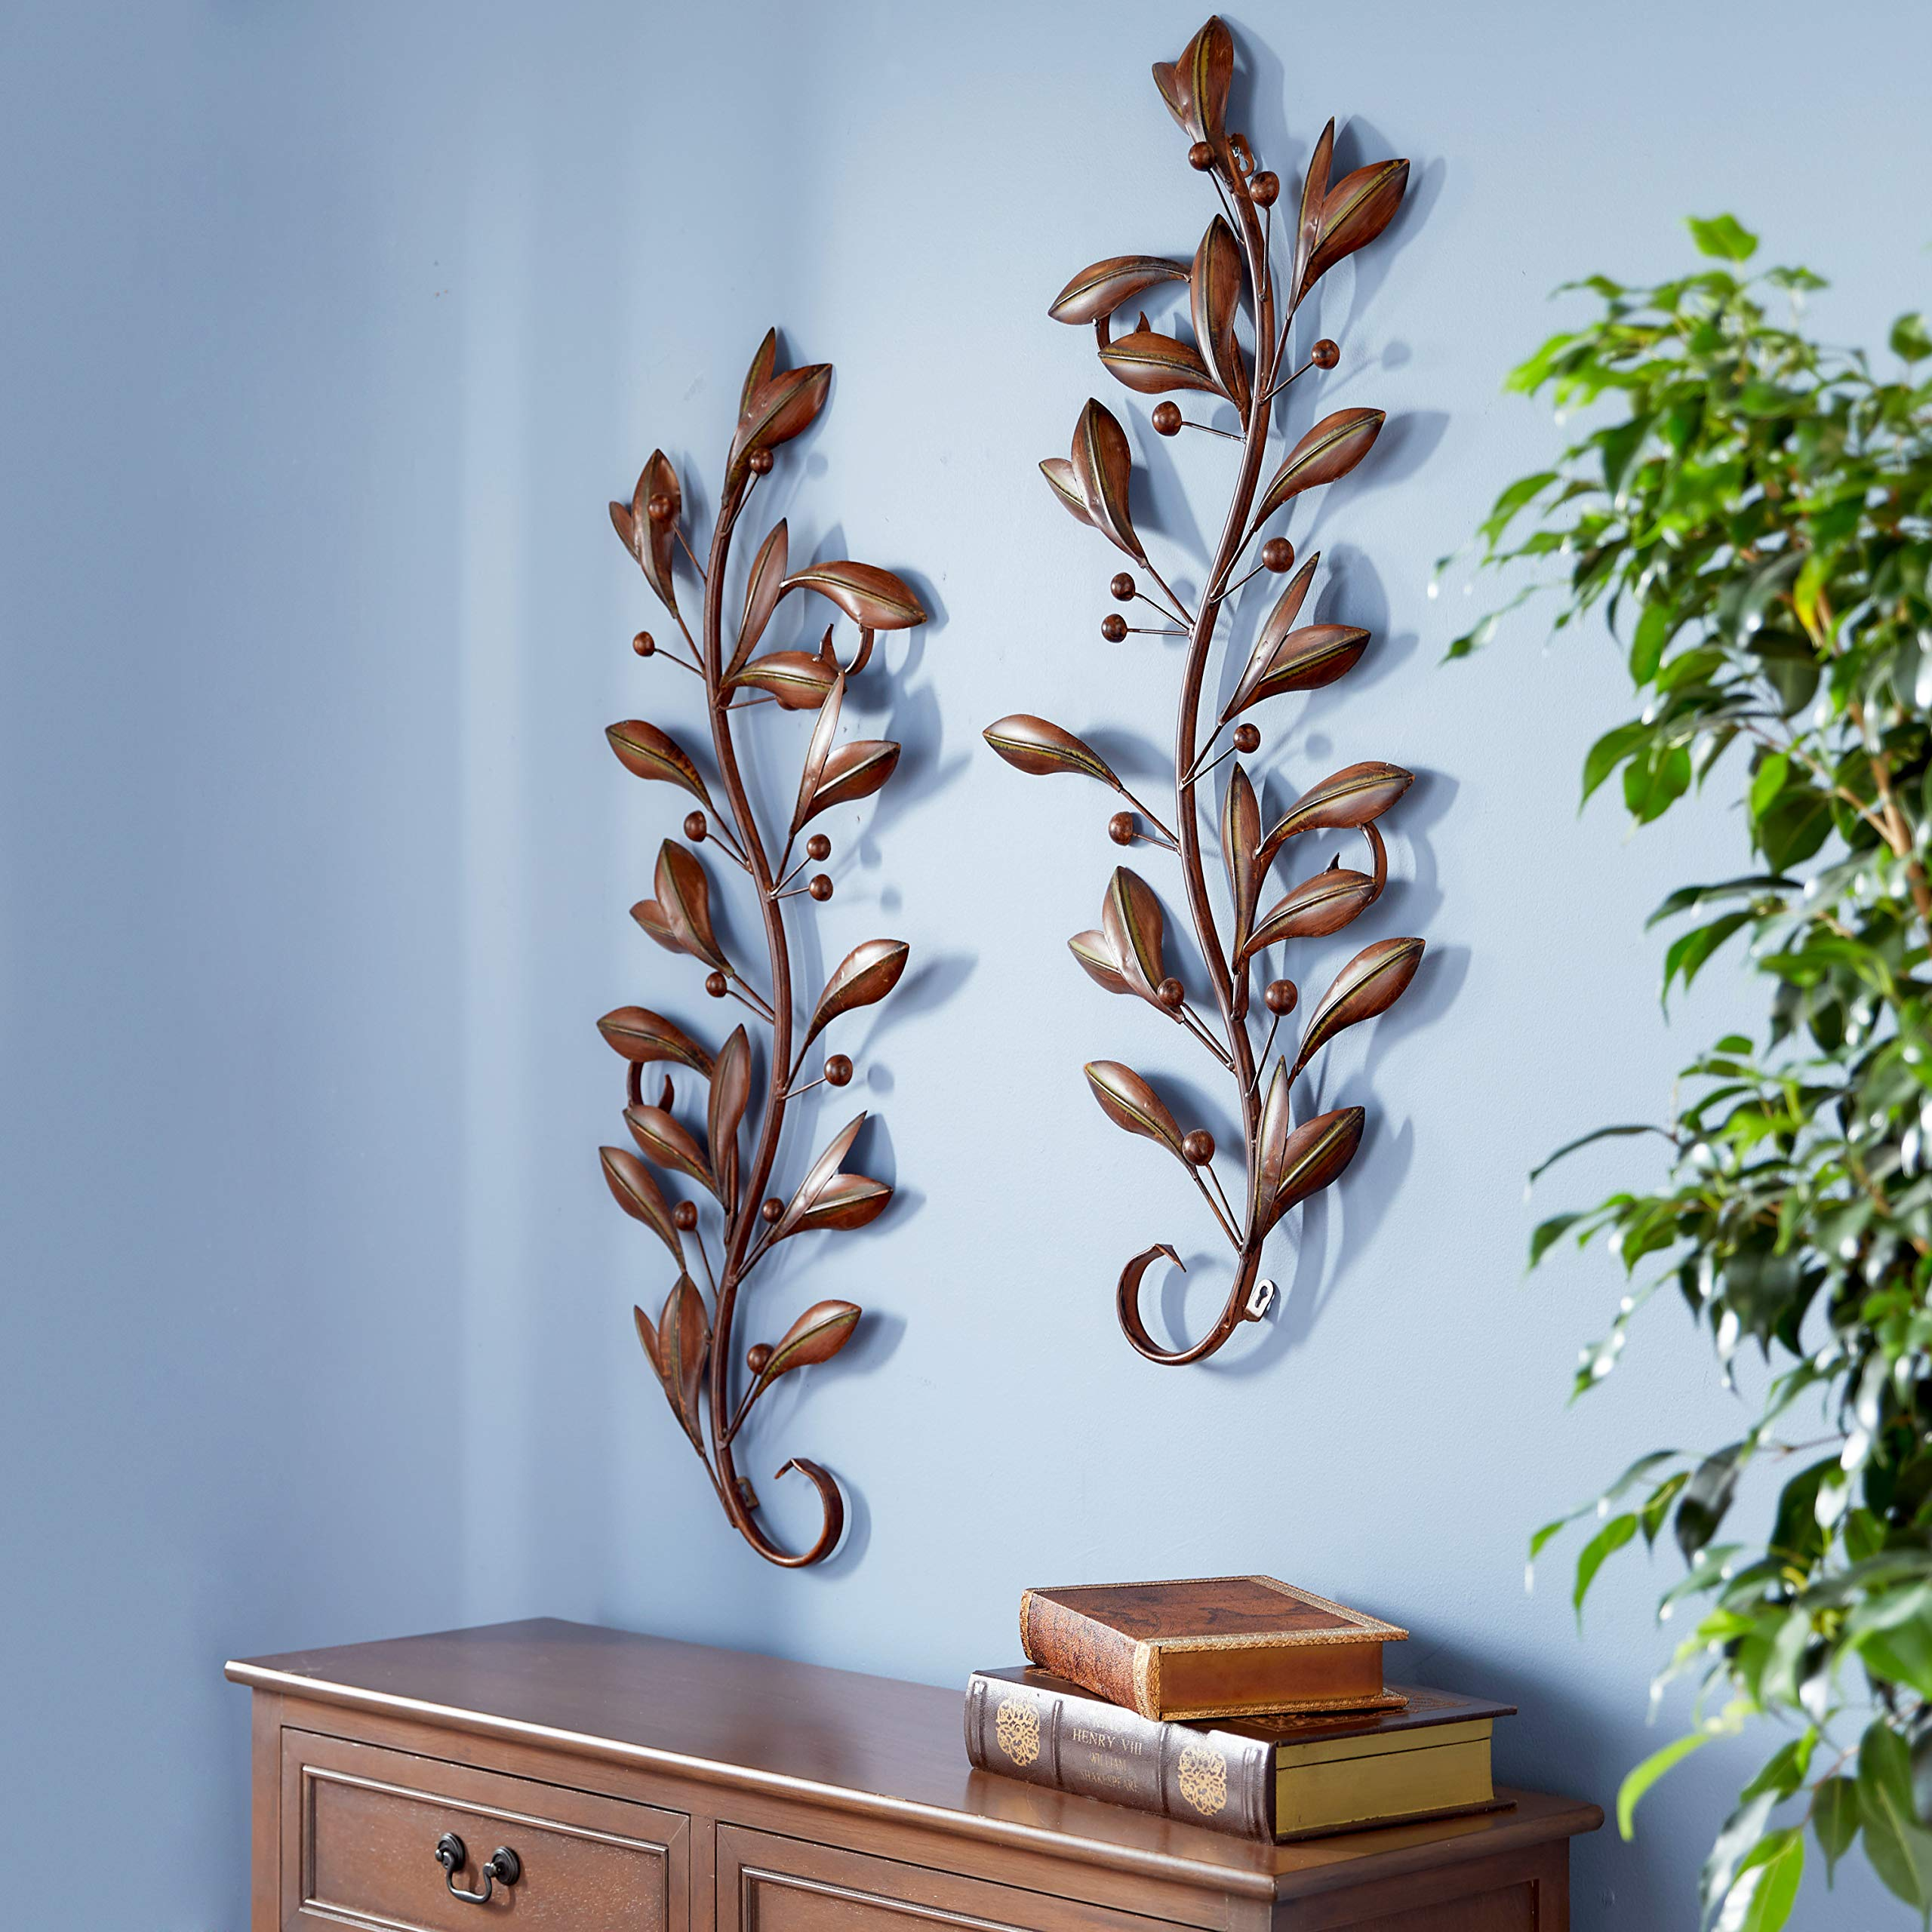 Deco 79 63048 Loft Nature Metal Leaf Wall Decor, 14 by 36-Inch, Antique Brown/Black, Sold in Pairs